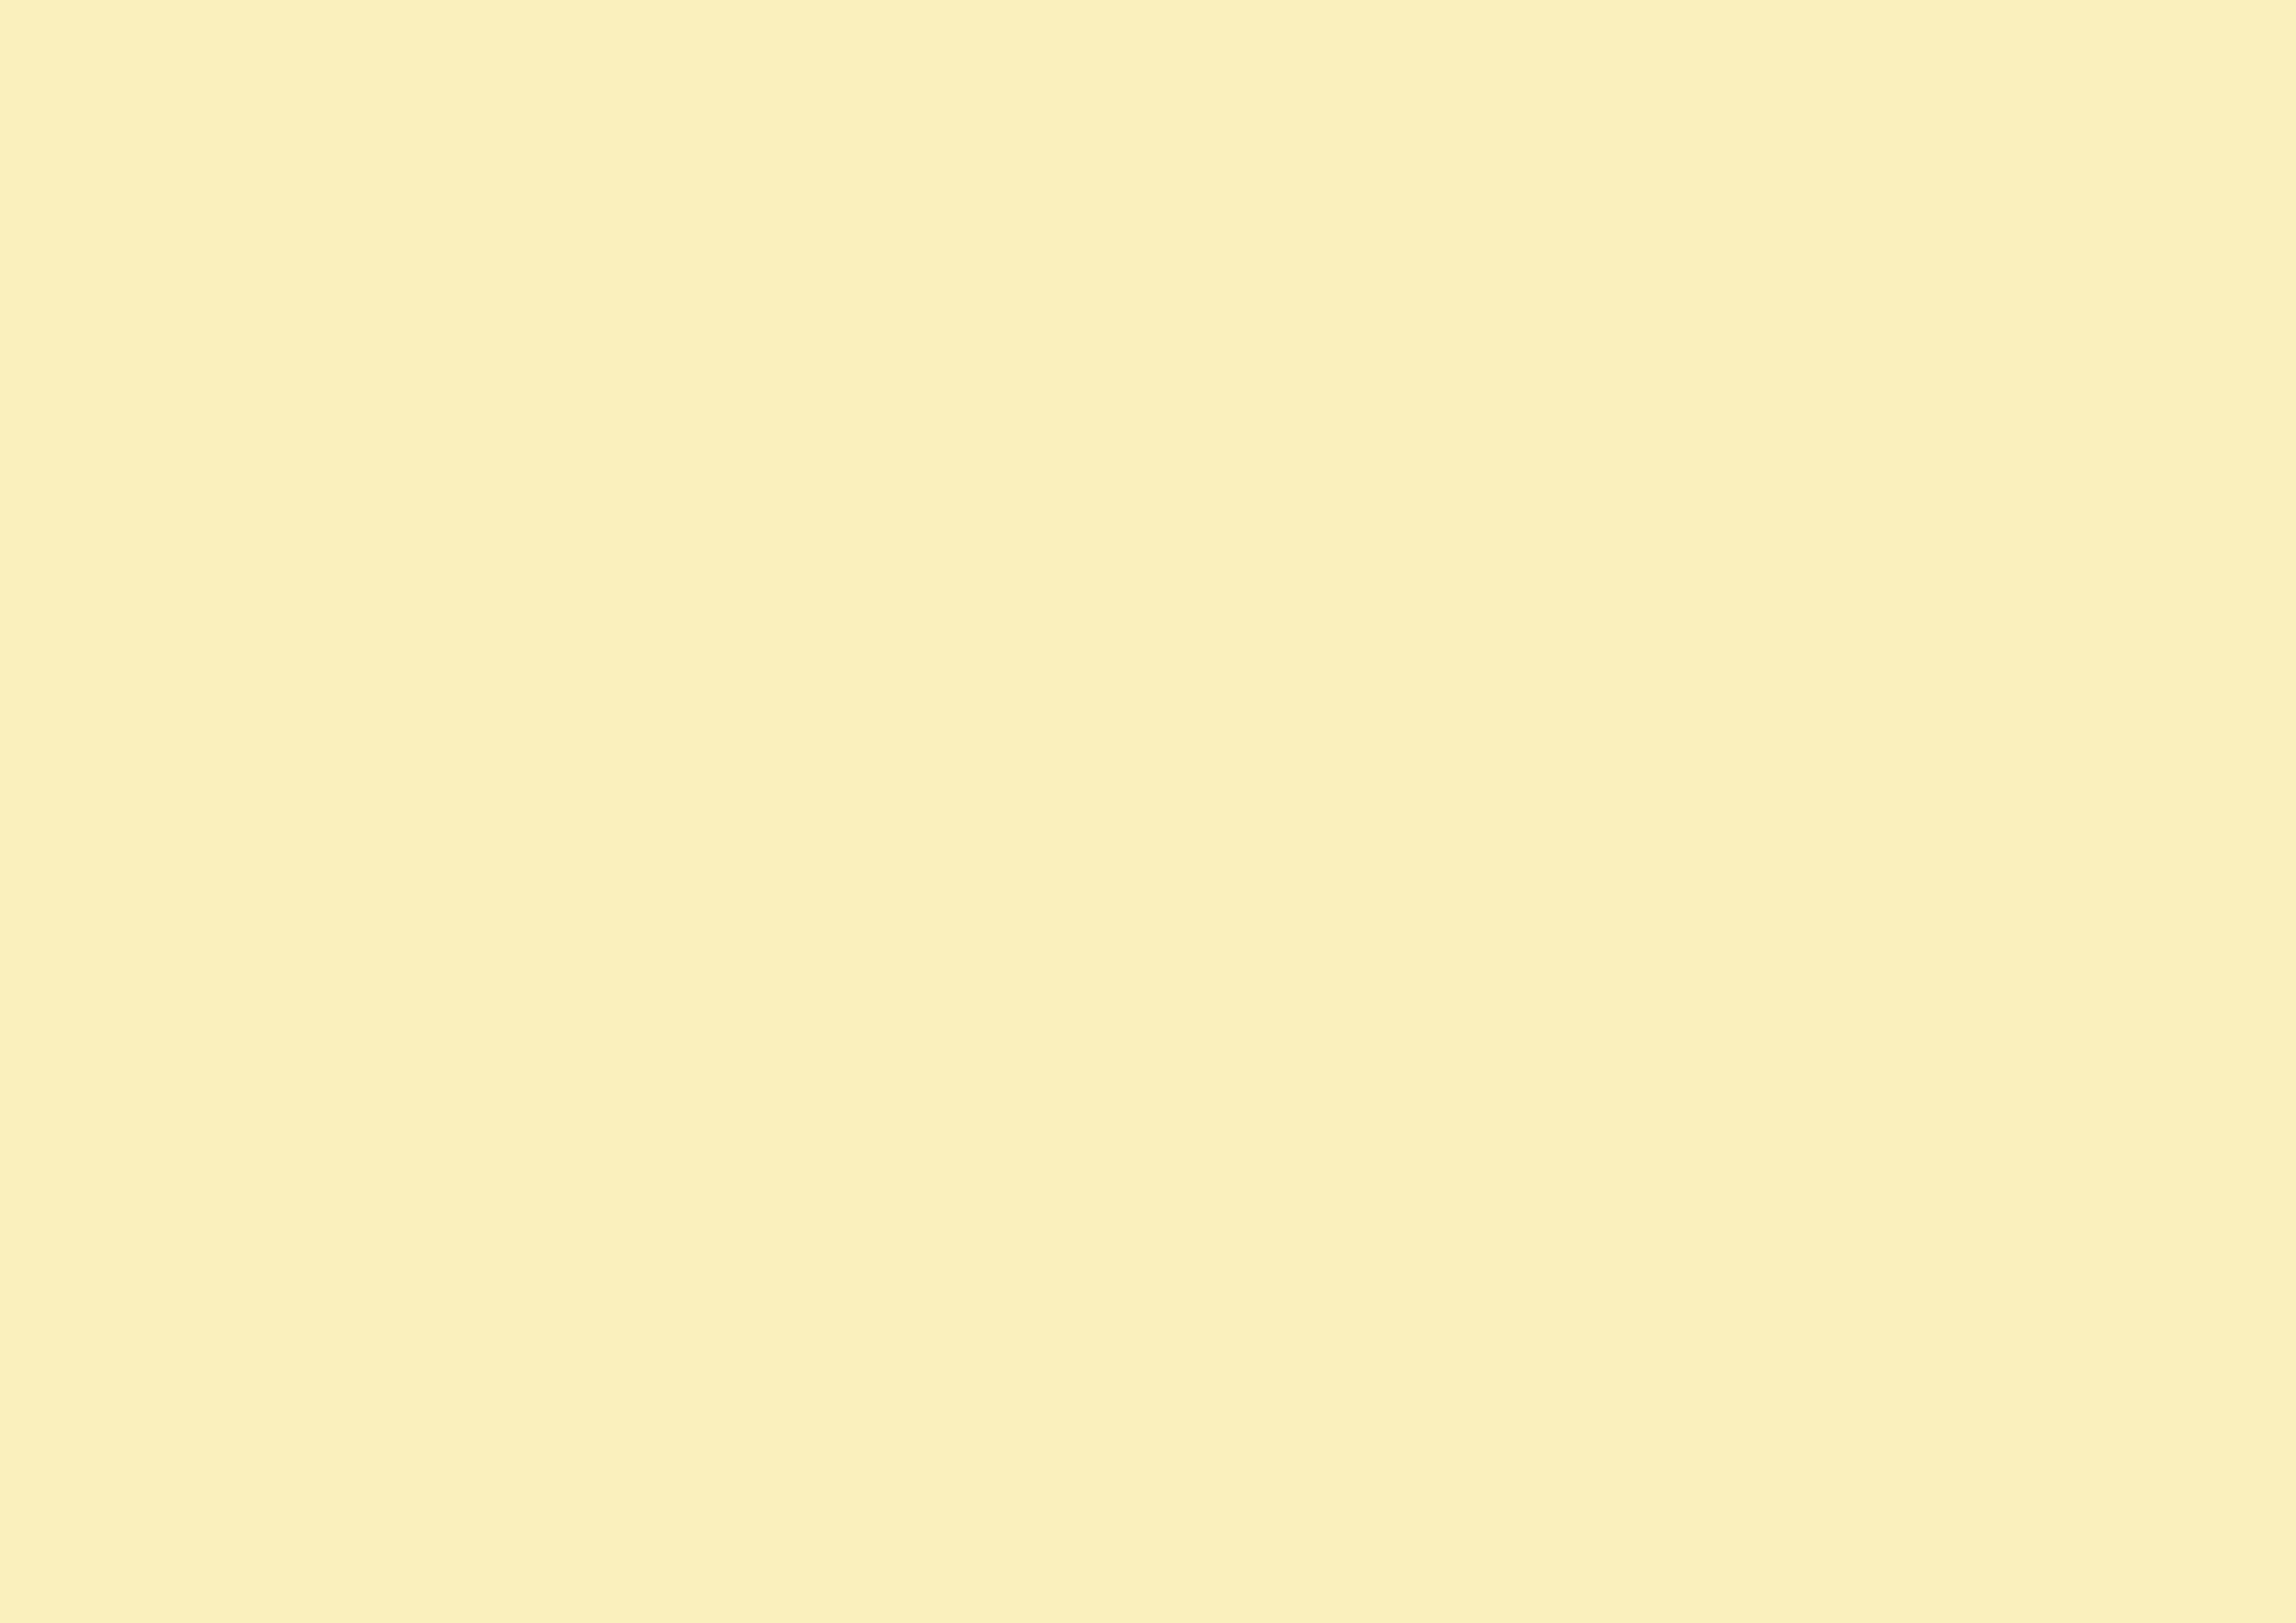 3508x2480 Blond Solid Color Background